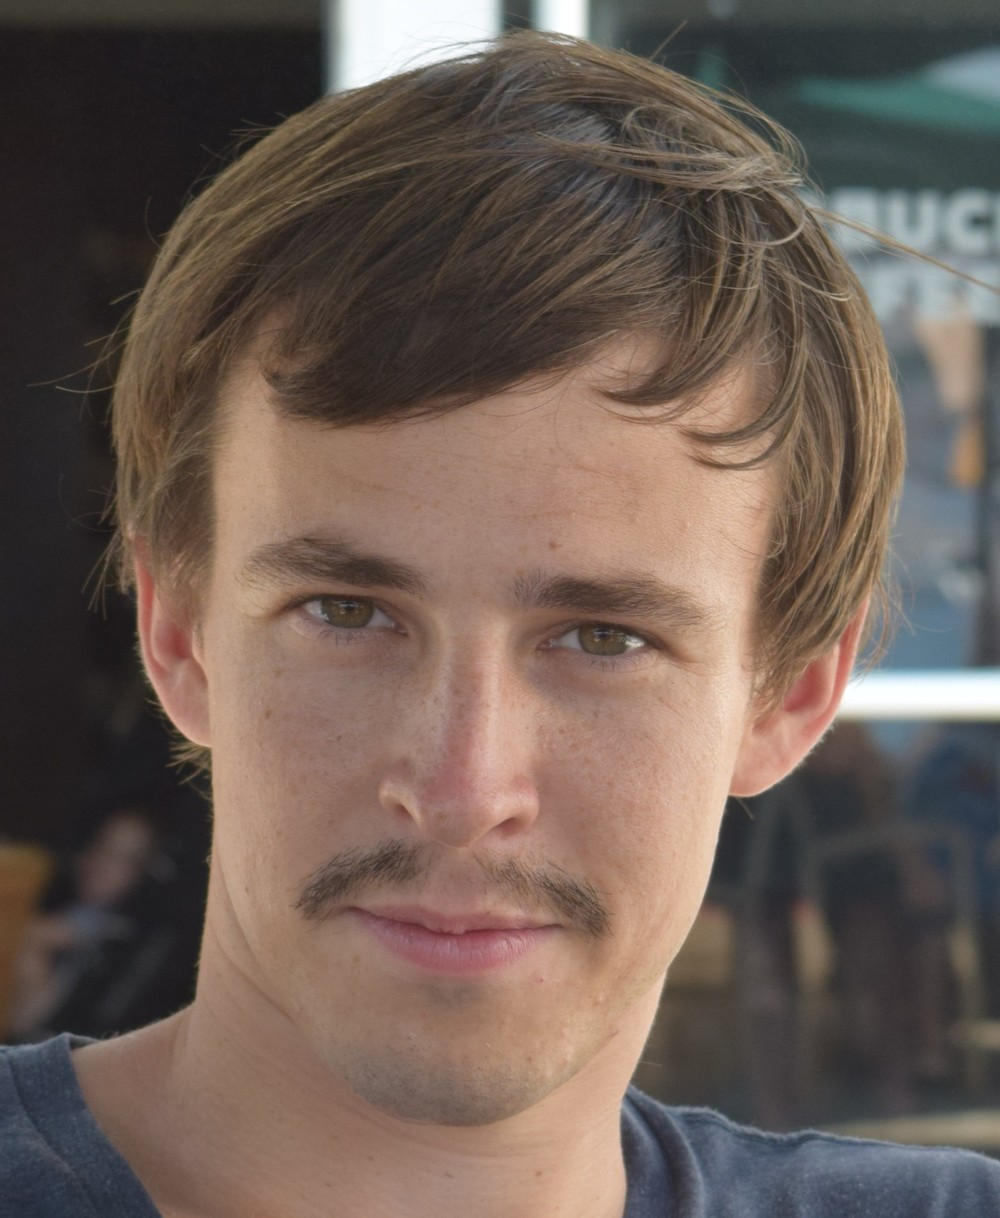 The mustache when it was just a wee lad.  [Feel free to forward this head shot to your talent agent friends.]